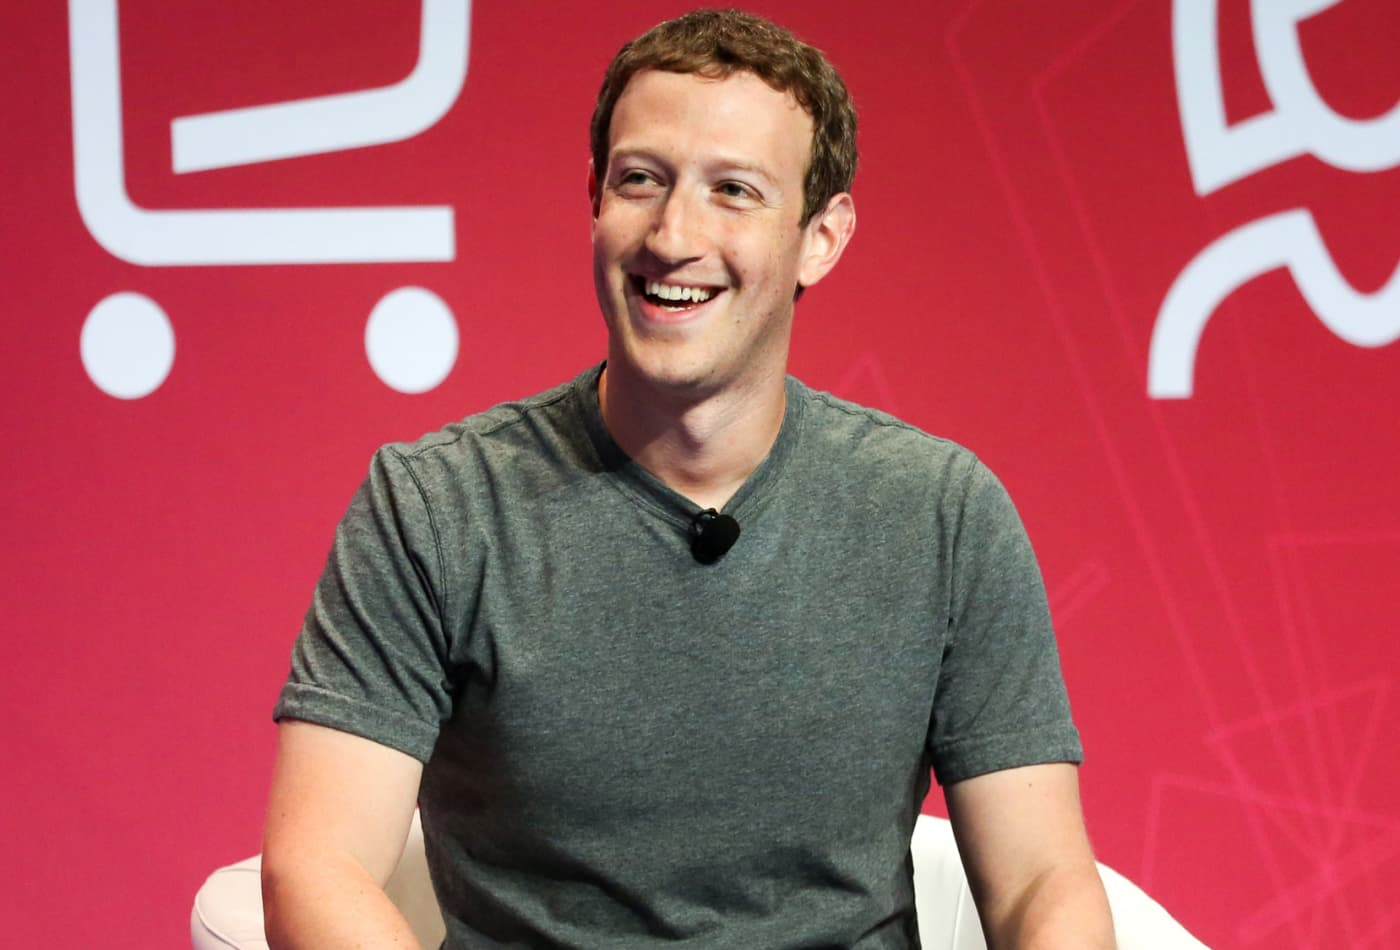 Mark Zuckerberg: Facebook's News Feed shows how important it is to